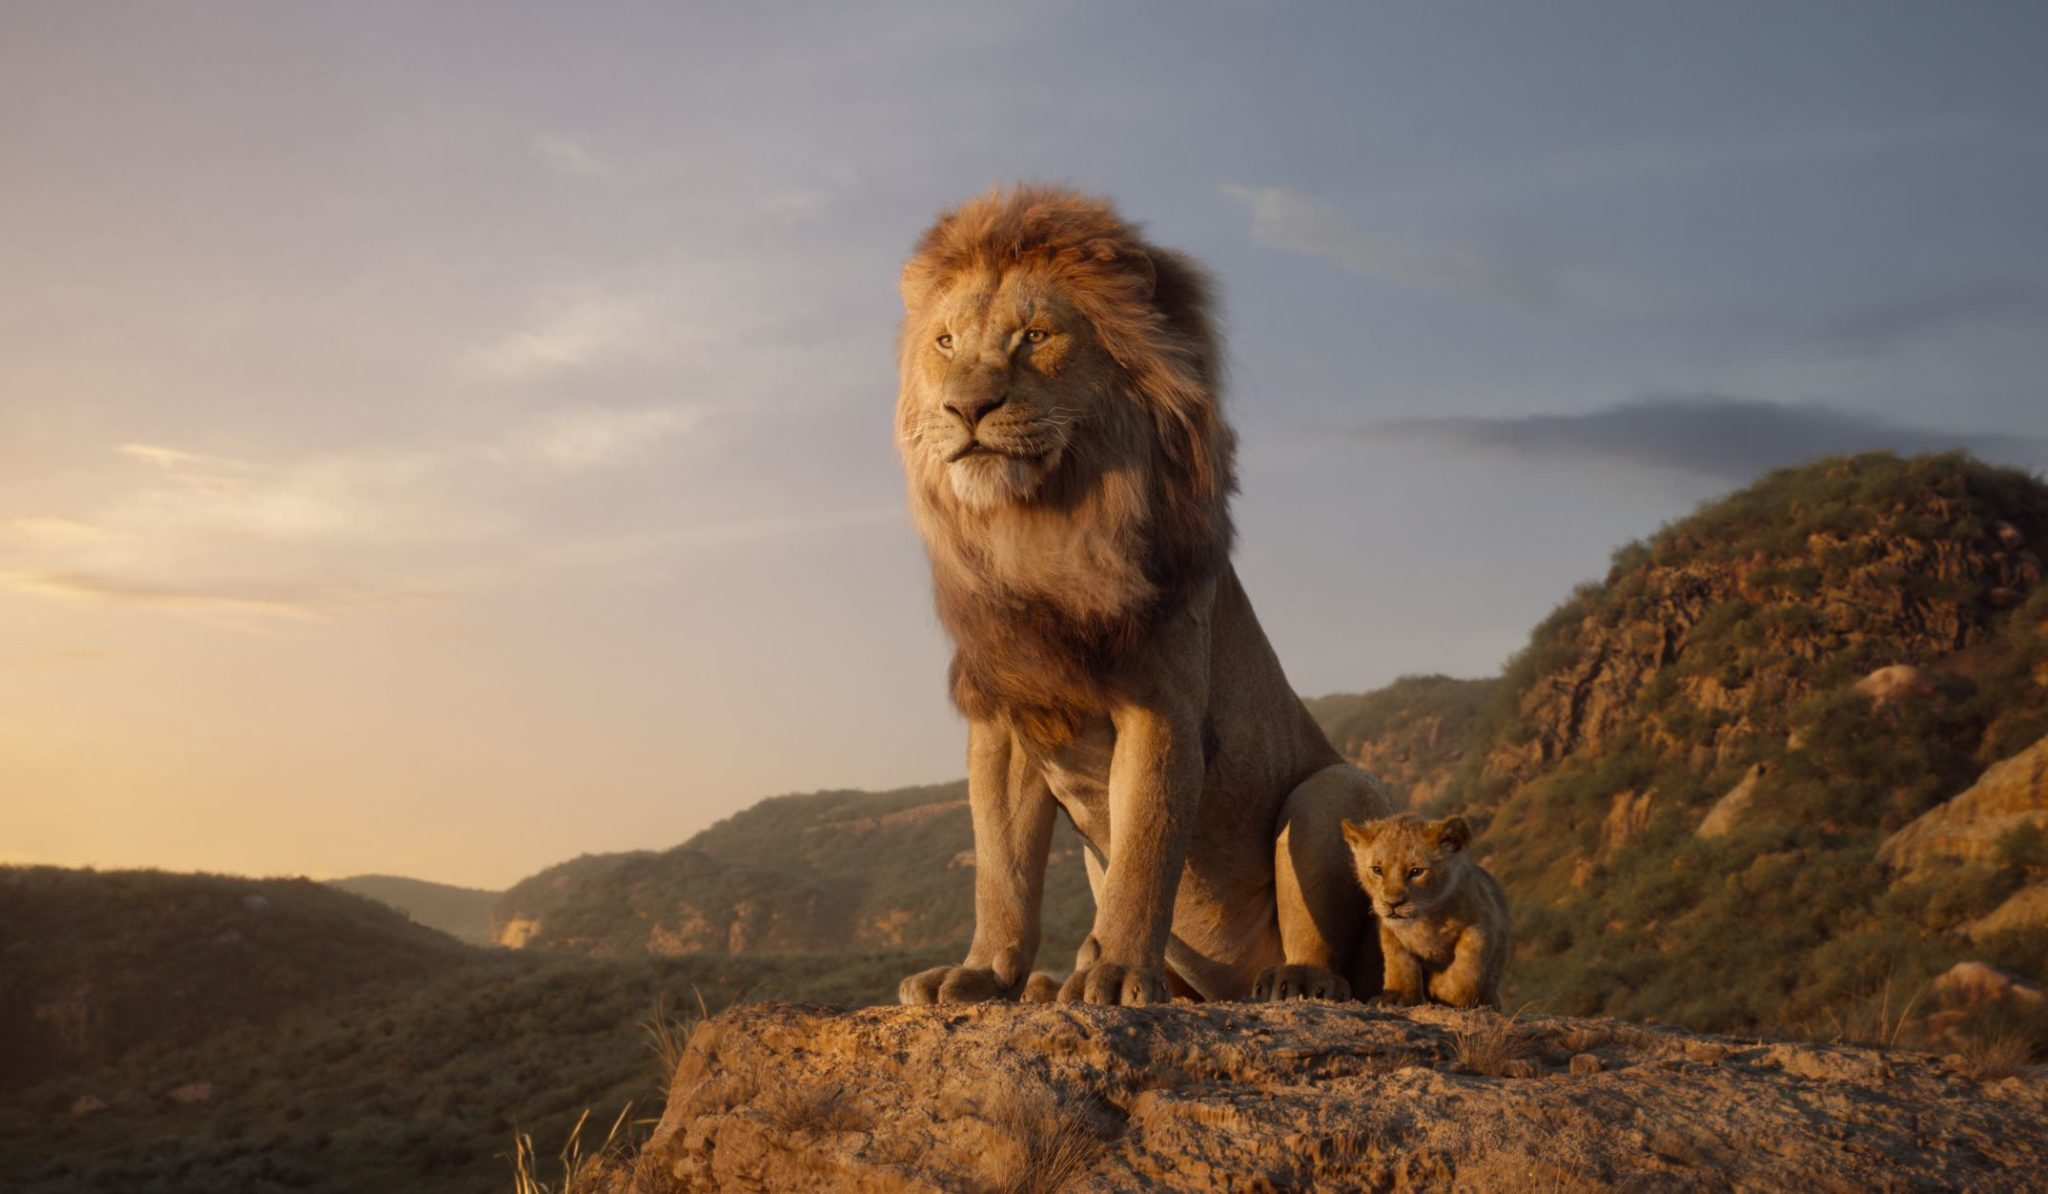 Still from Disney's The Lion King